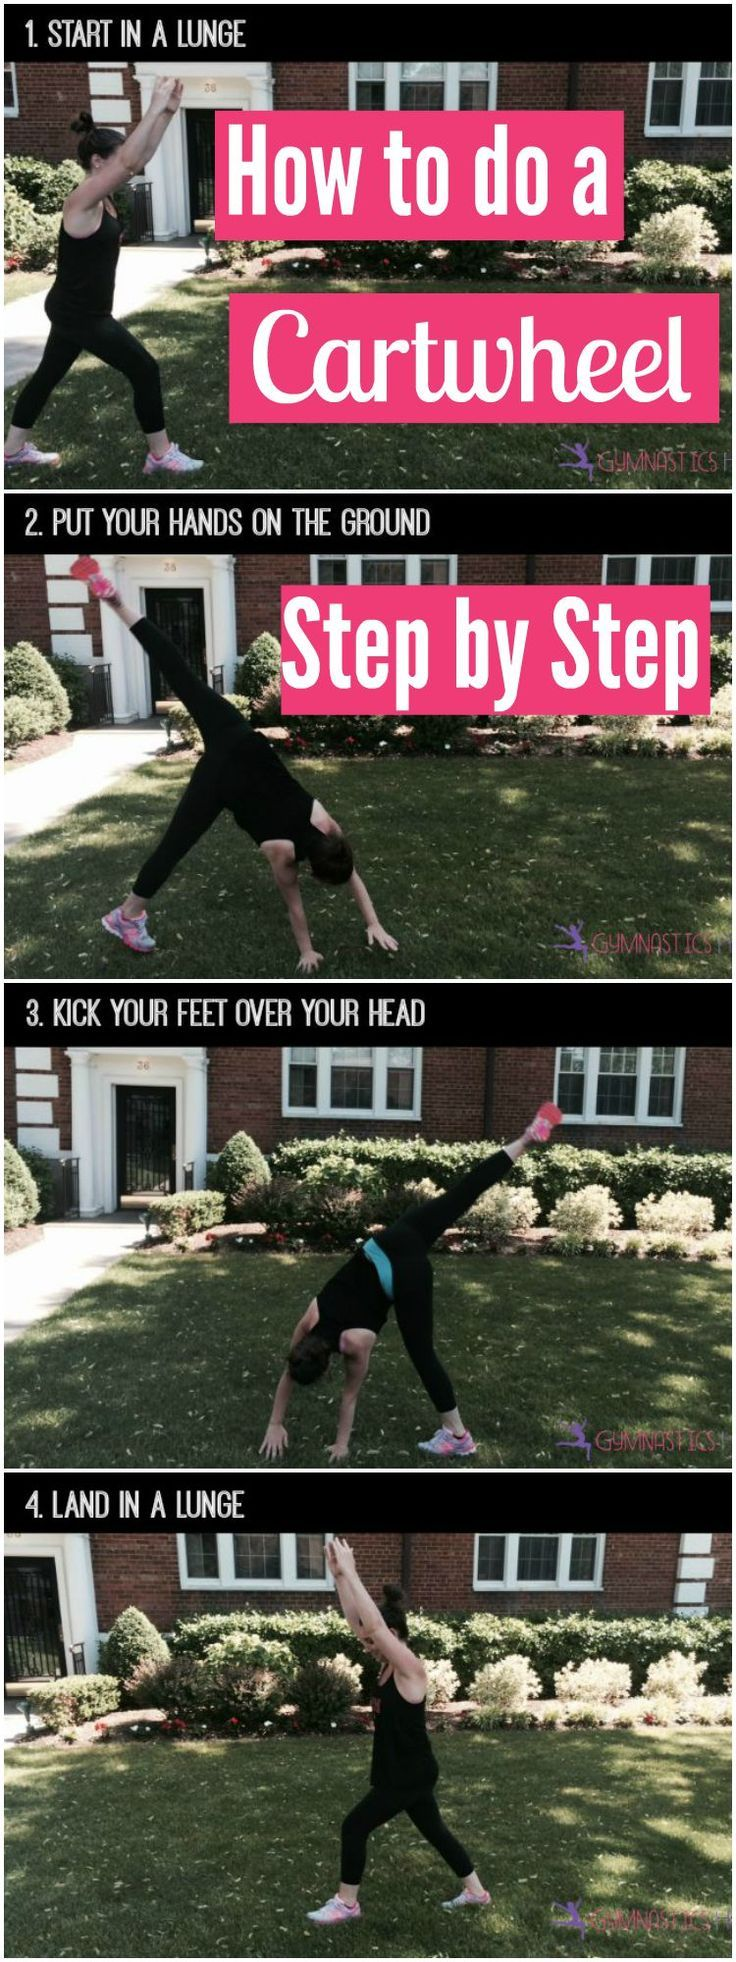 how to make a cartwheel step by step